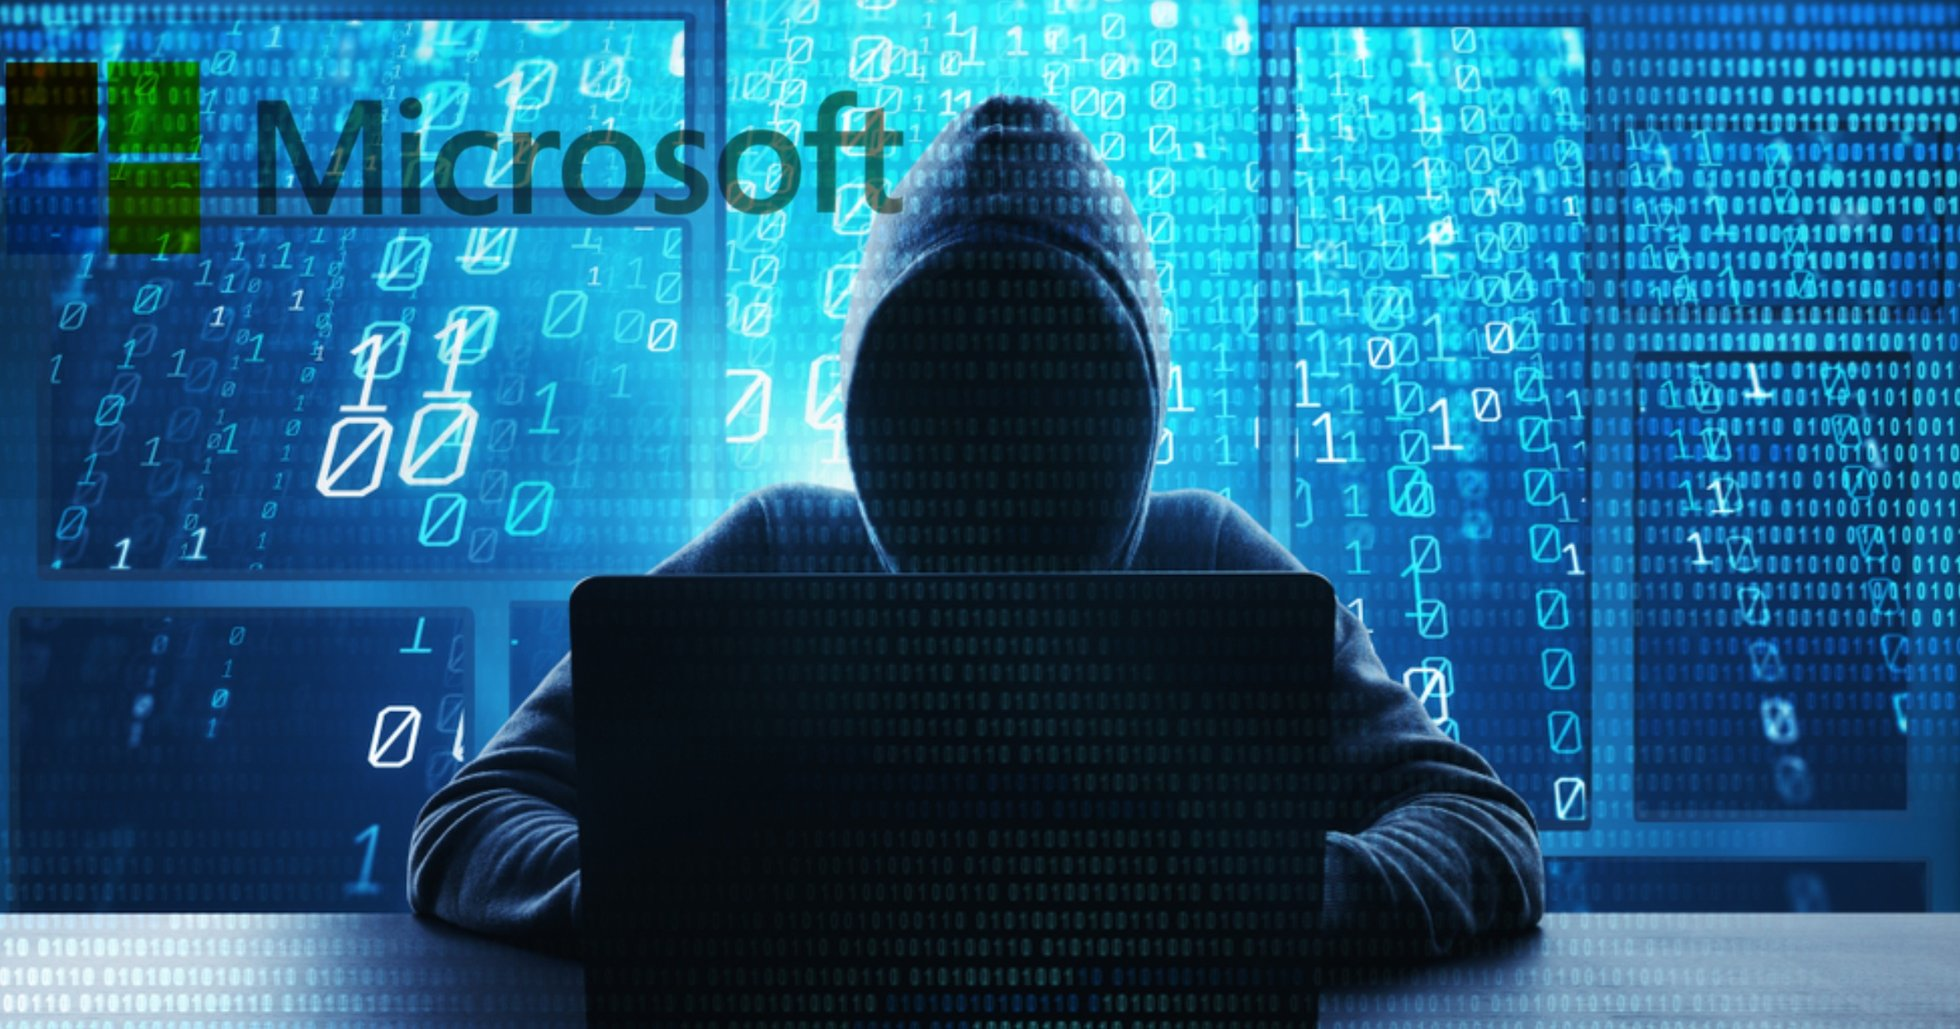 Microsoft warns of new Anubis virus - could steal your cryptocurrencies